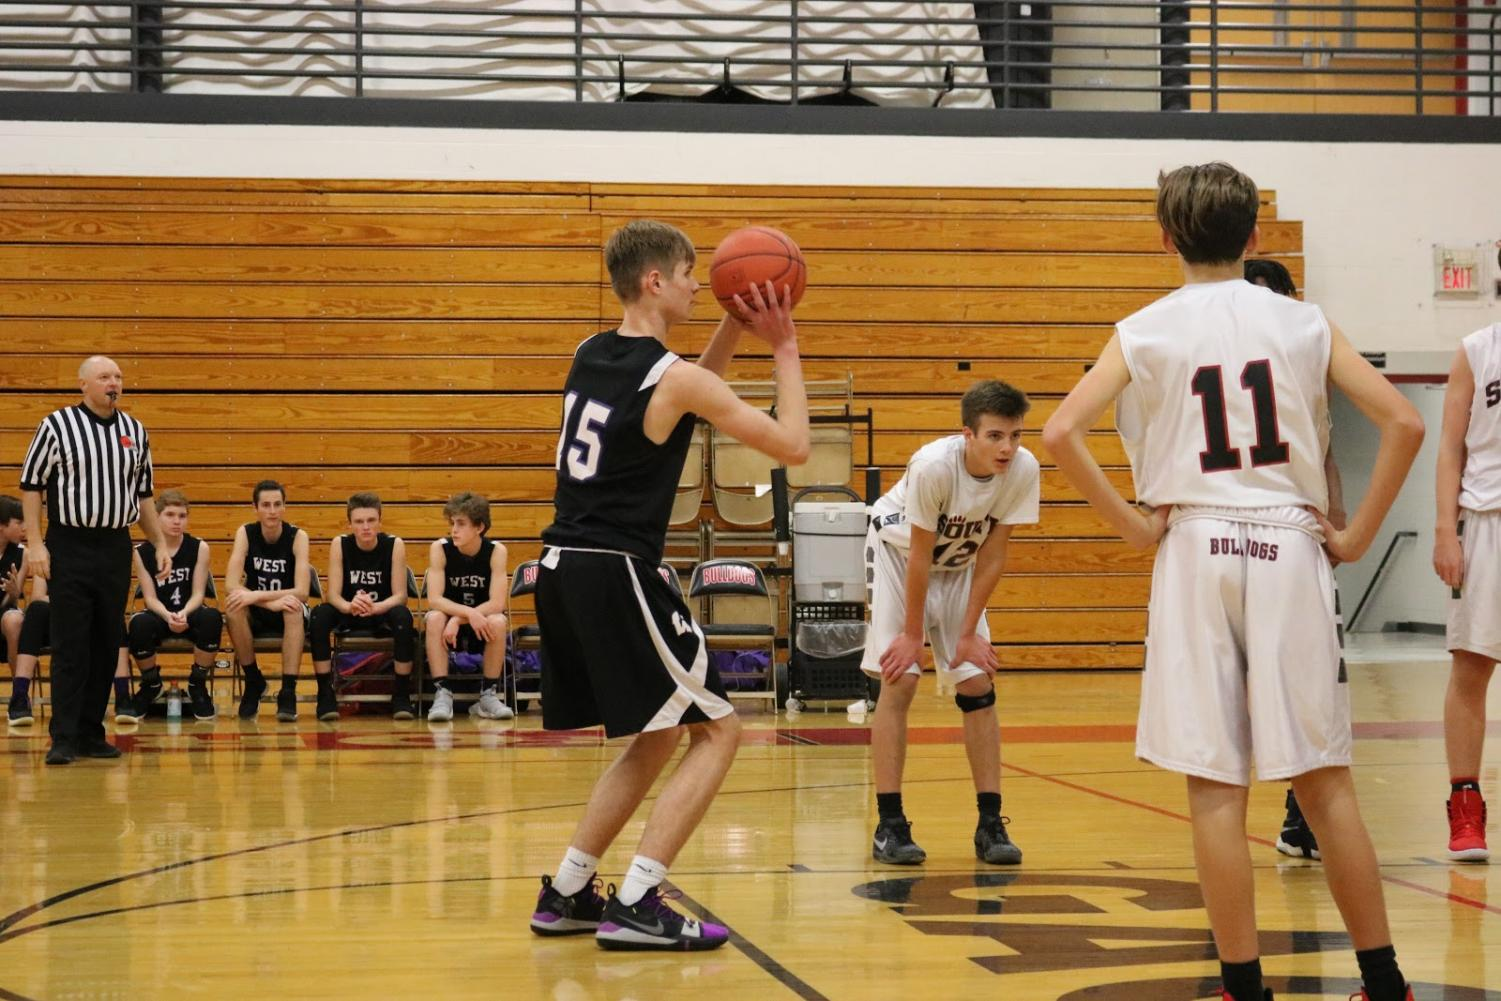 The freshman boys basketball team will play in the championship tournament against Eureka.